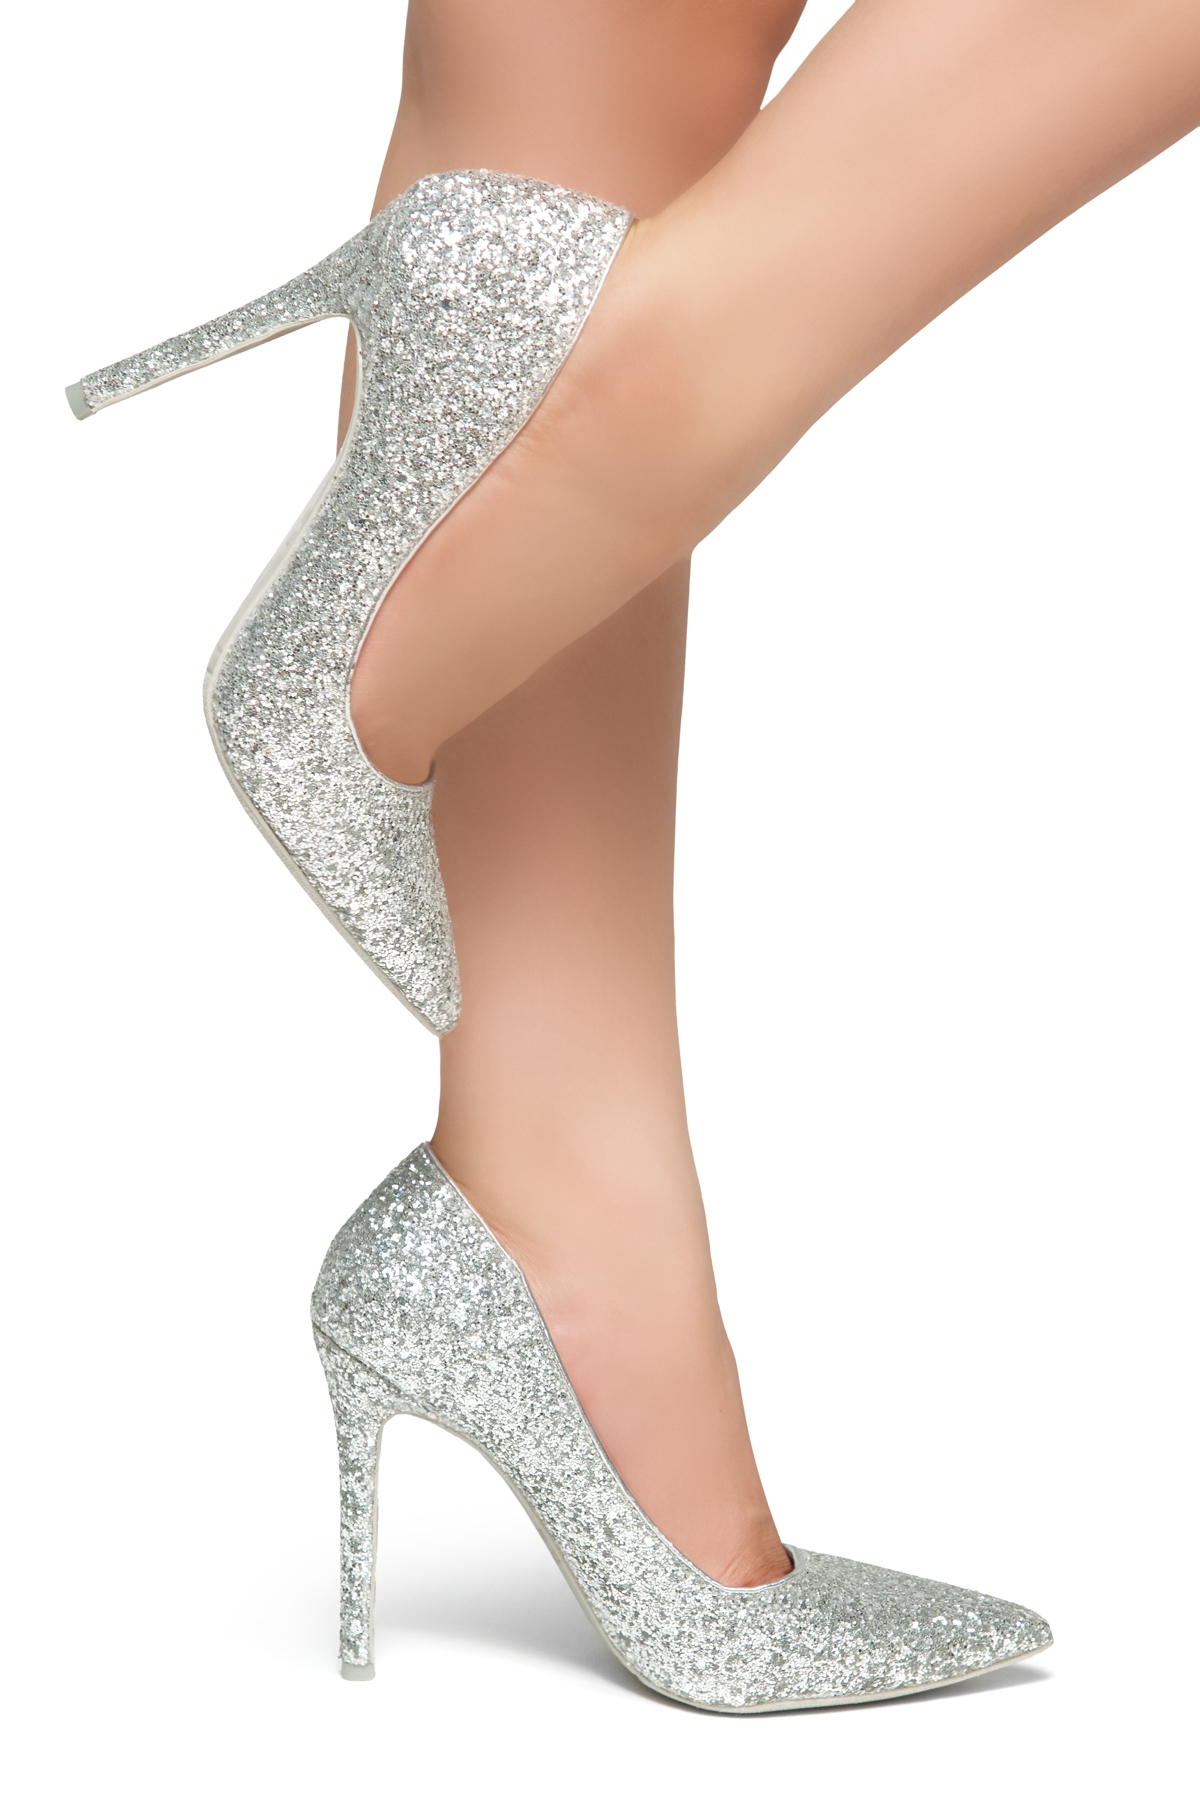 c752863c8f HerStyle Marneena-Women's Manmade 4-inch Sueded Heel with Lightly Pointed  Toe (Silver Glitter)